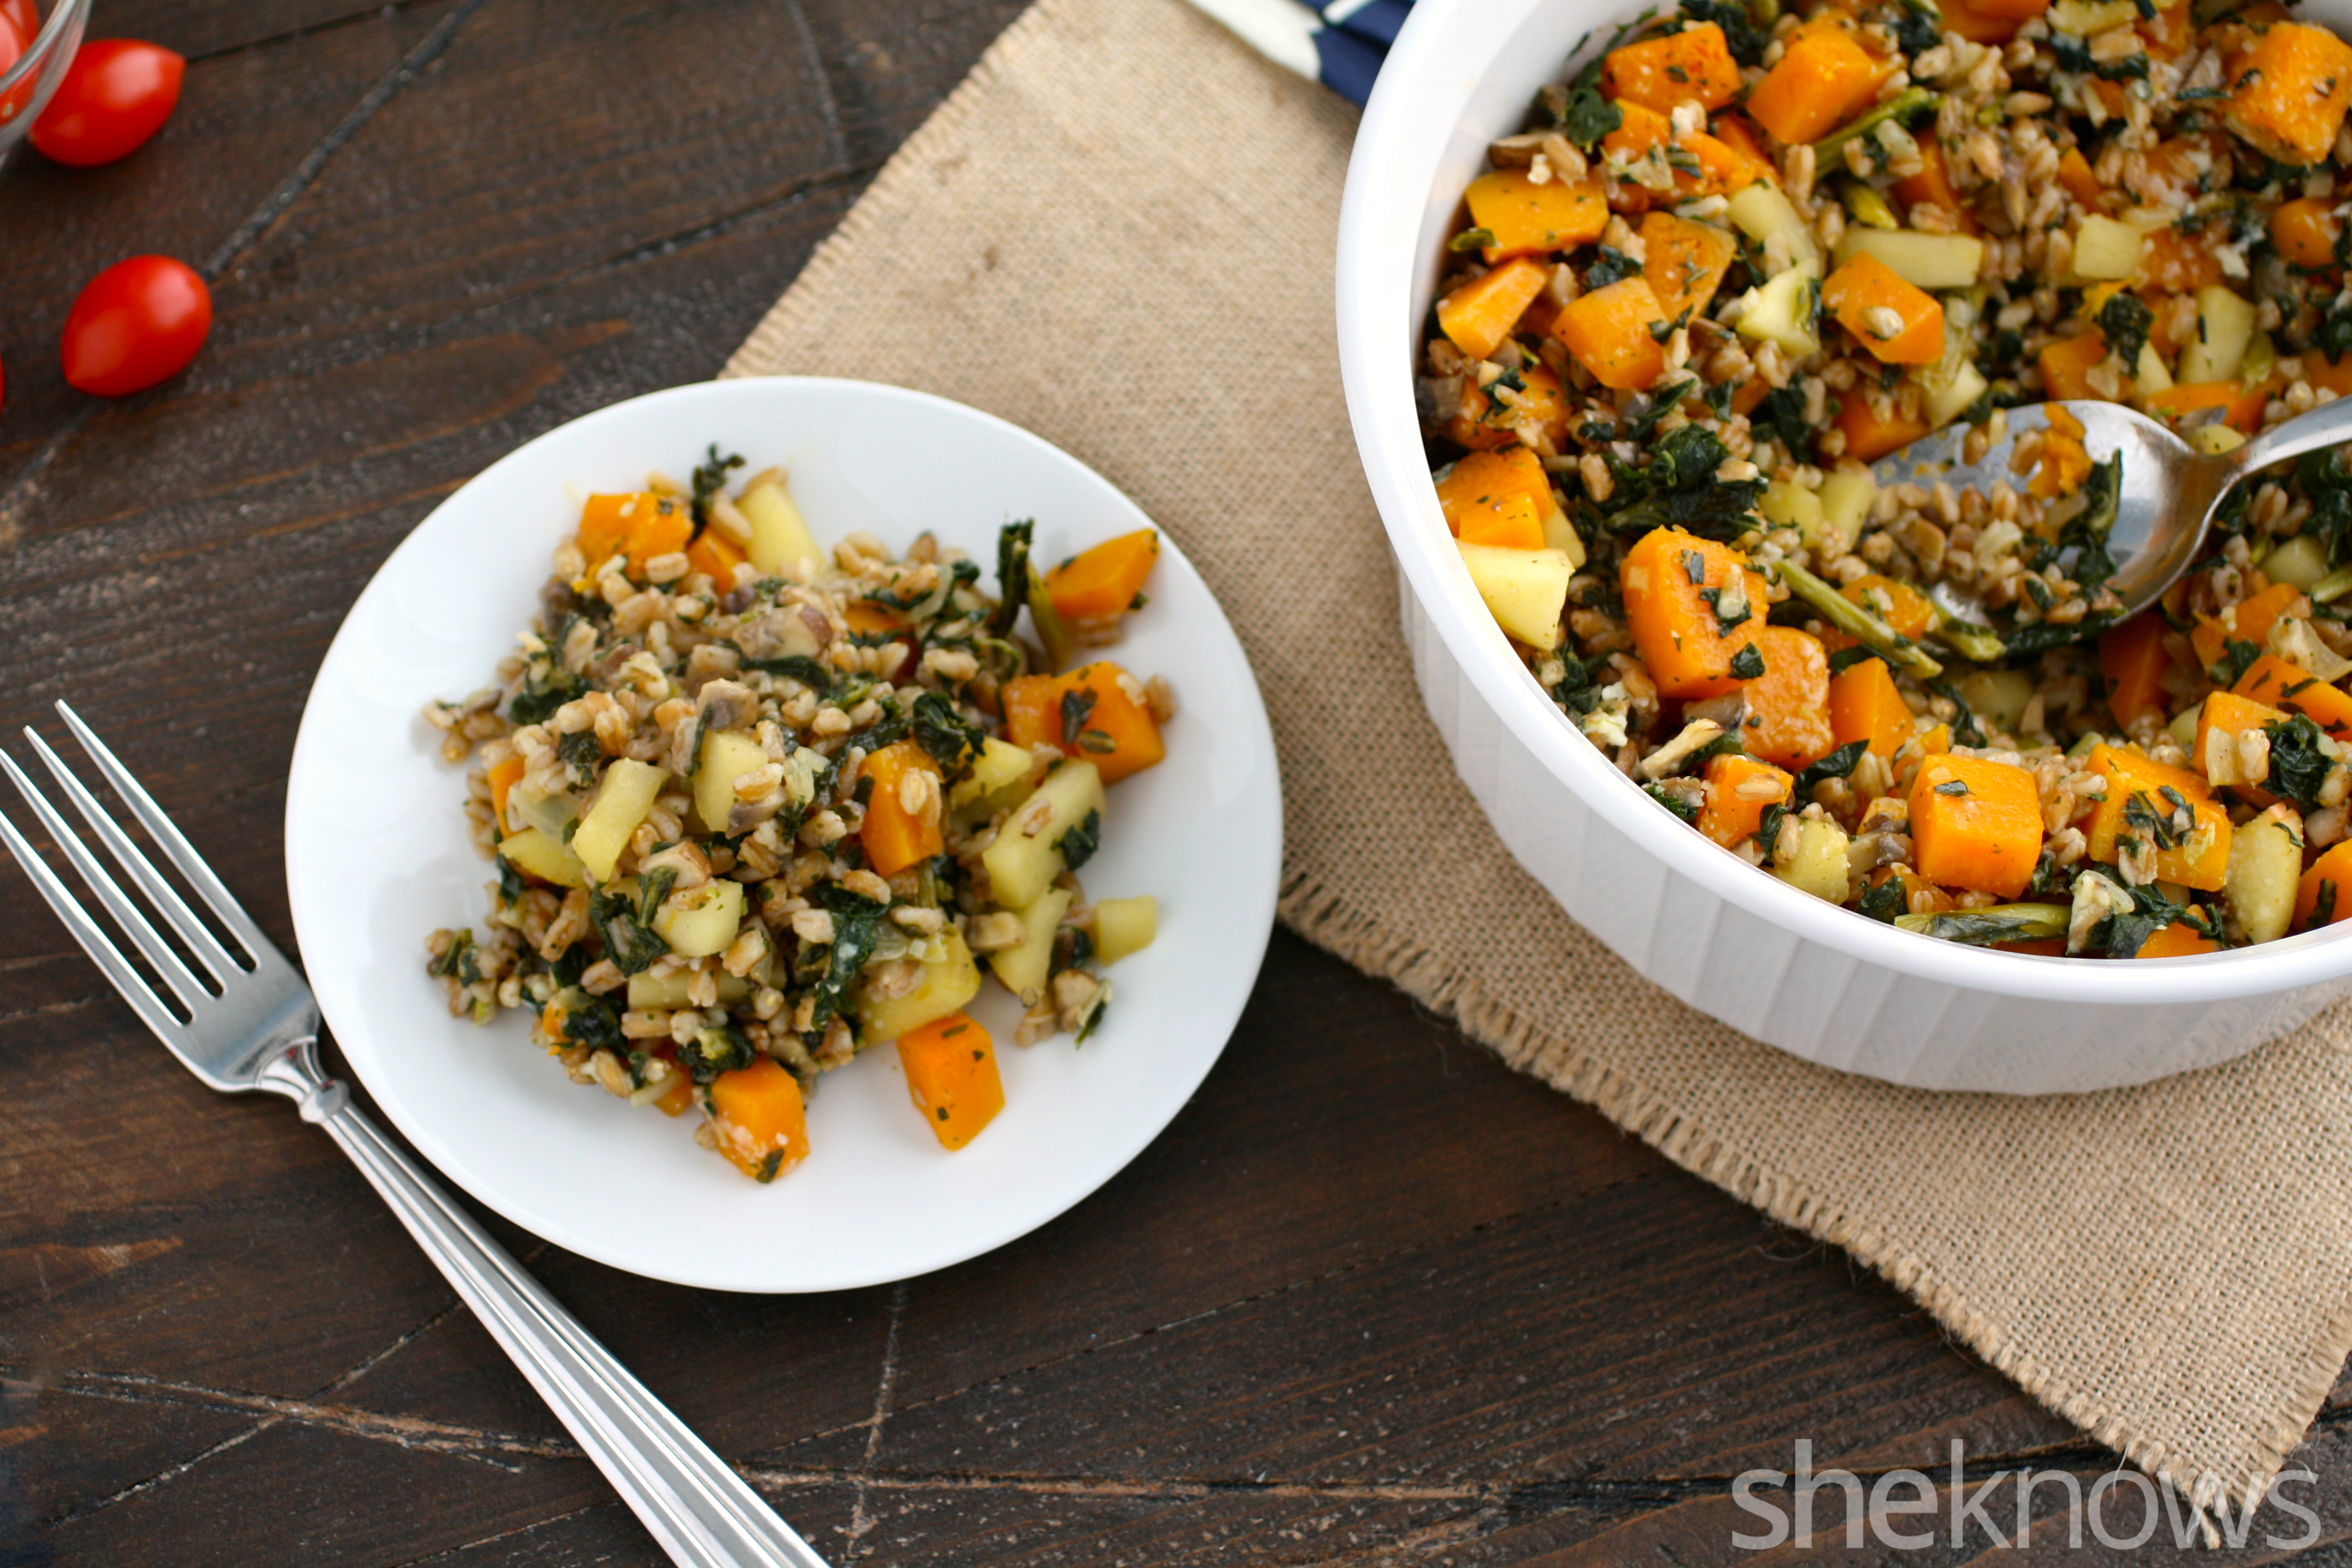 Perfect for a Meatless Monday, farro, mushroom, and butternut squash bake is as tasty as it is filling.